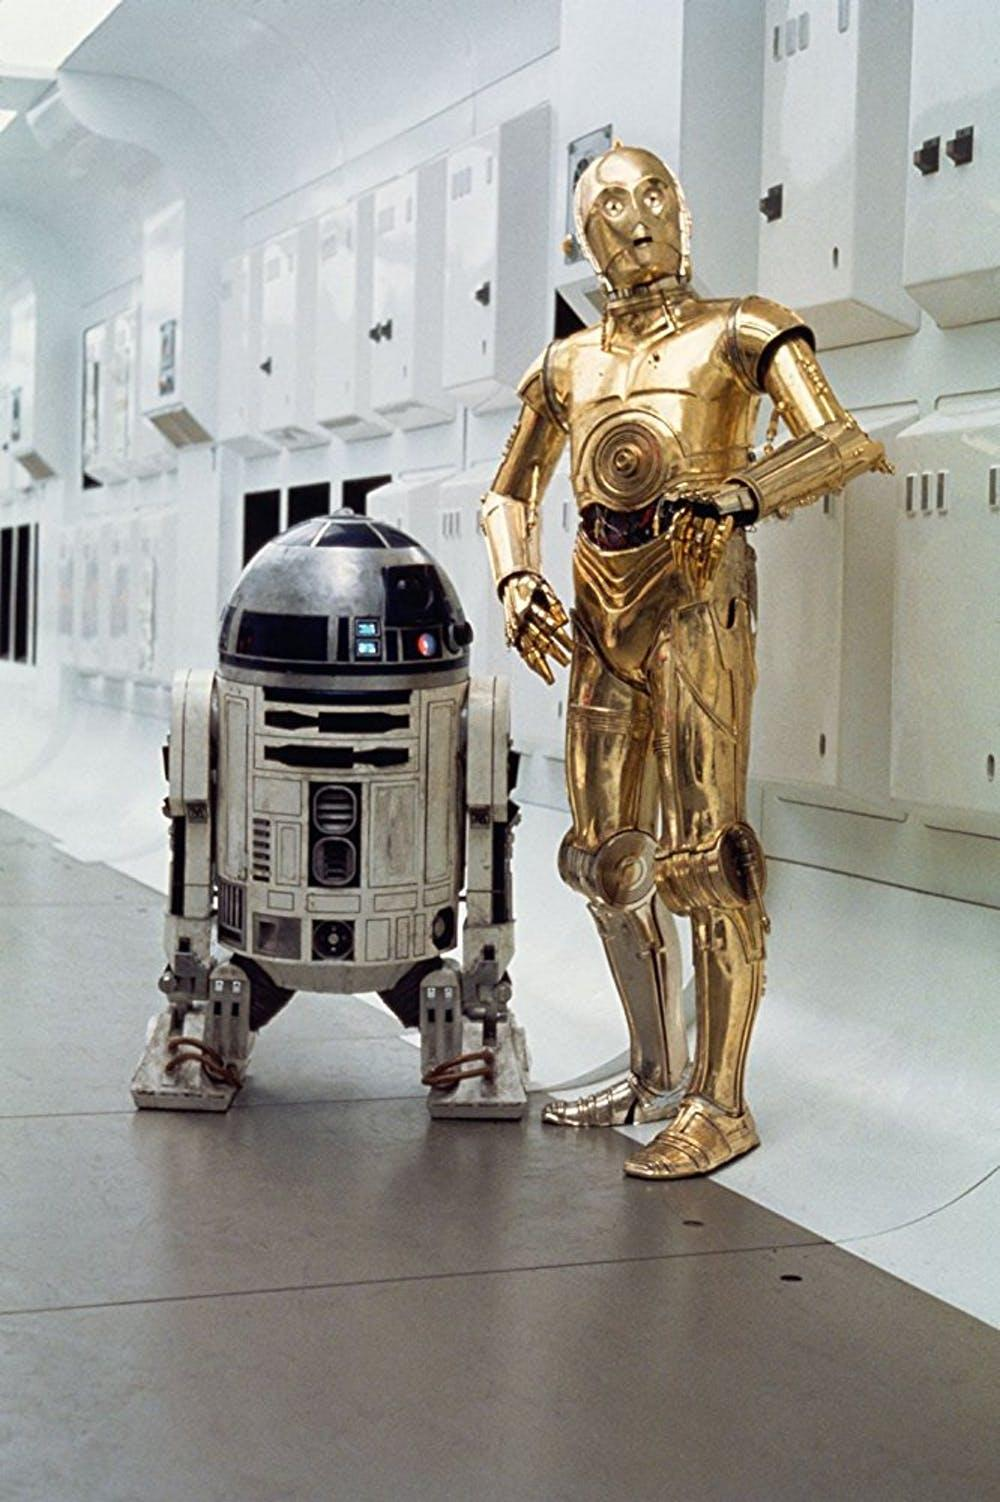 R2-D2 and C3PO in A New Hope